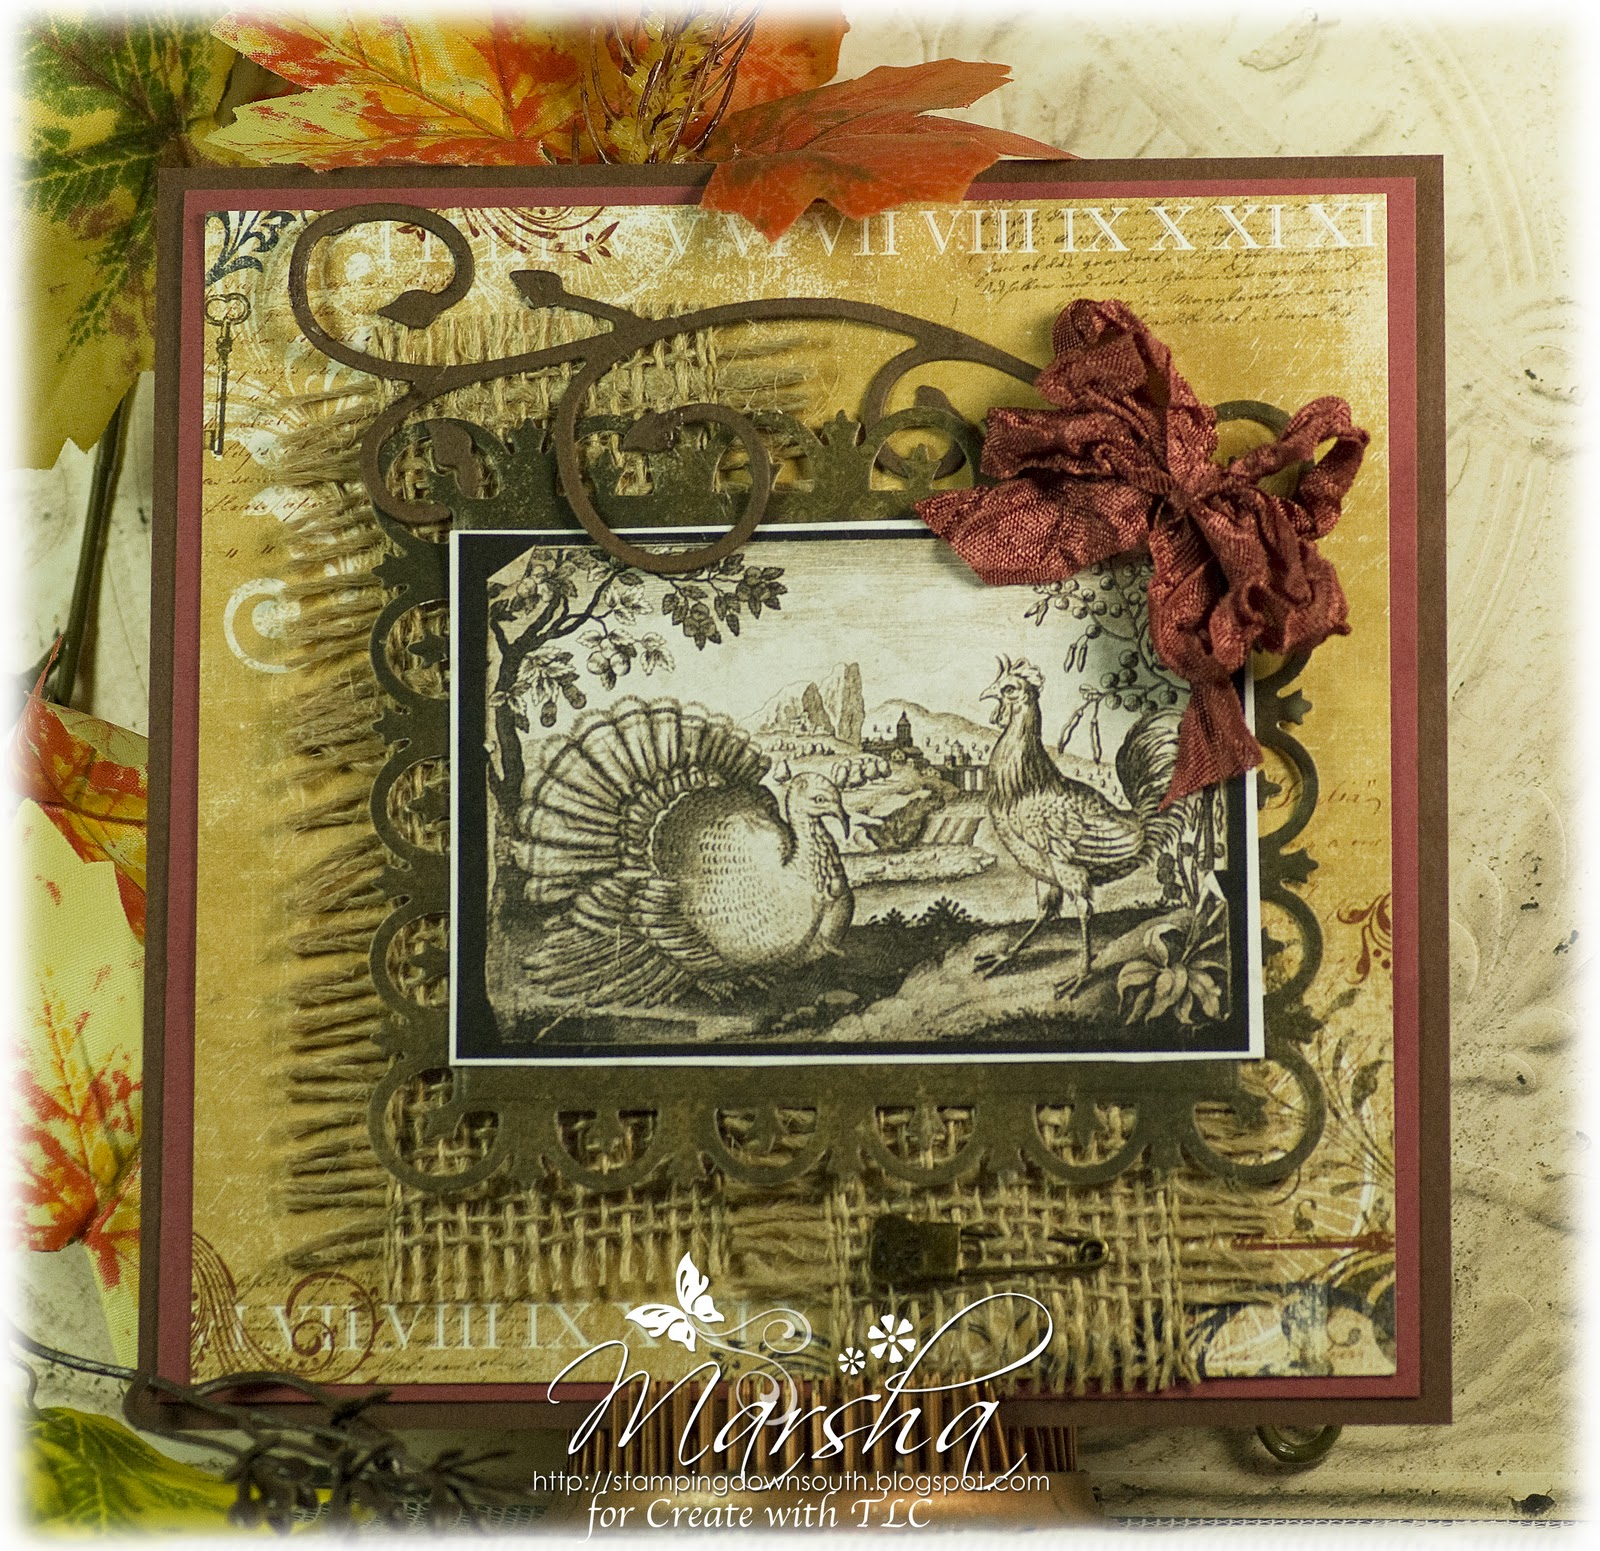 Stamping Down South: Vintage Thanksgiving Engraved